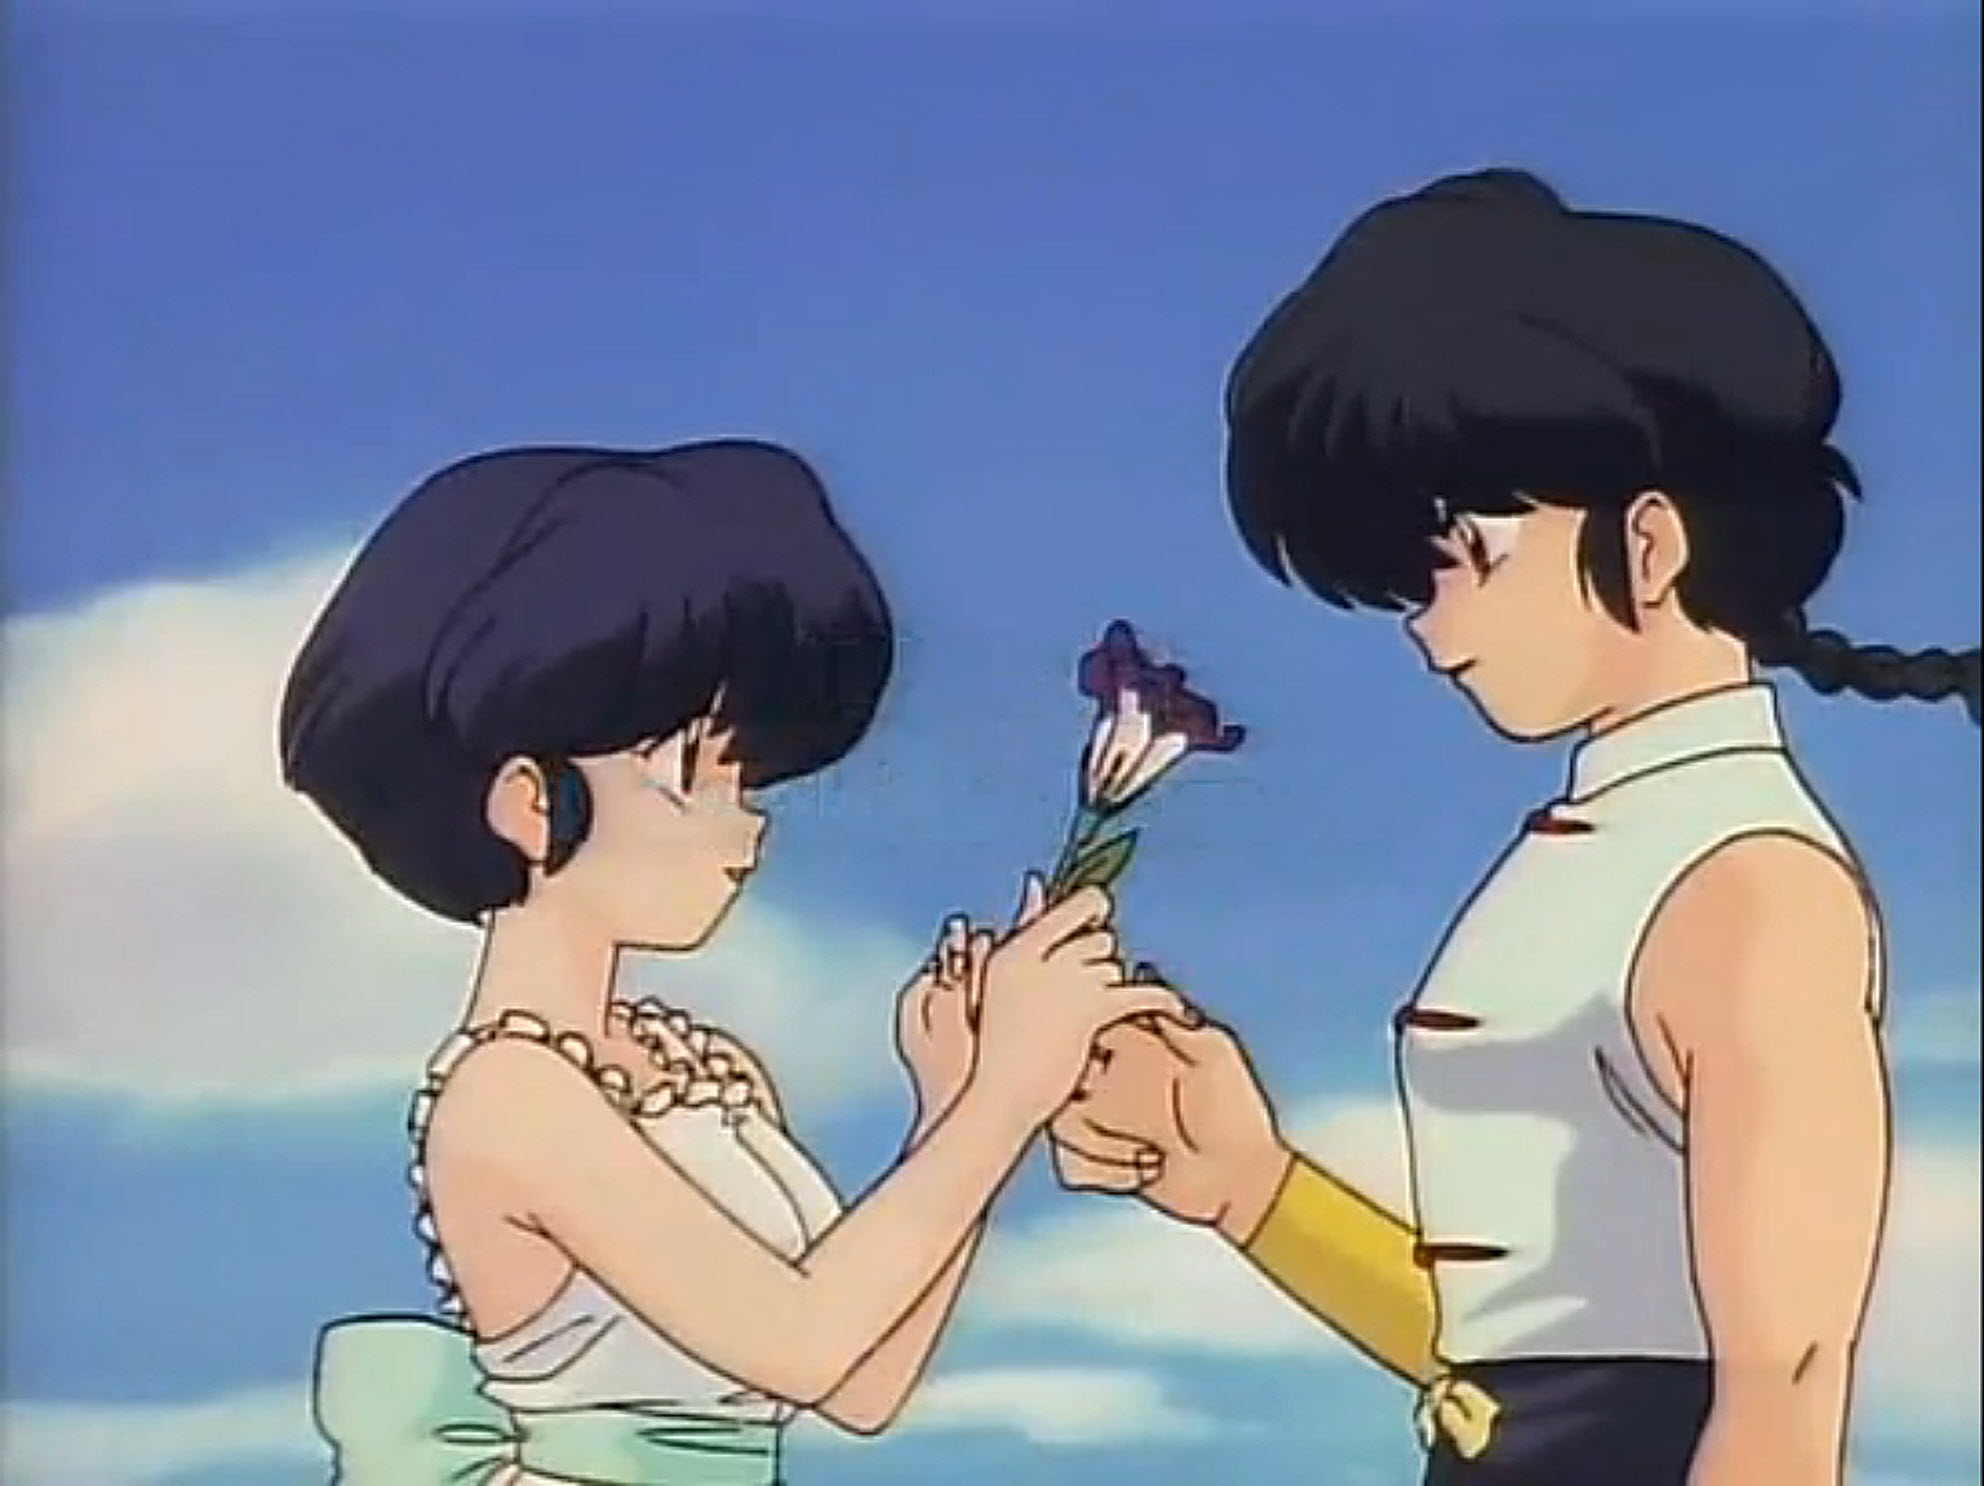 akane and ranma relationship test